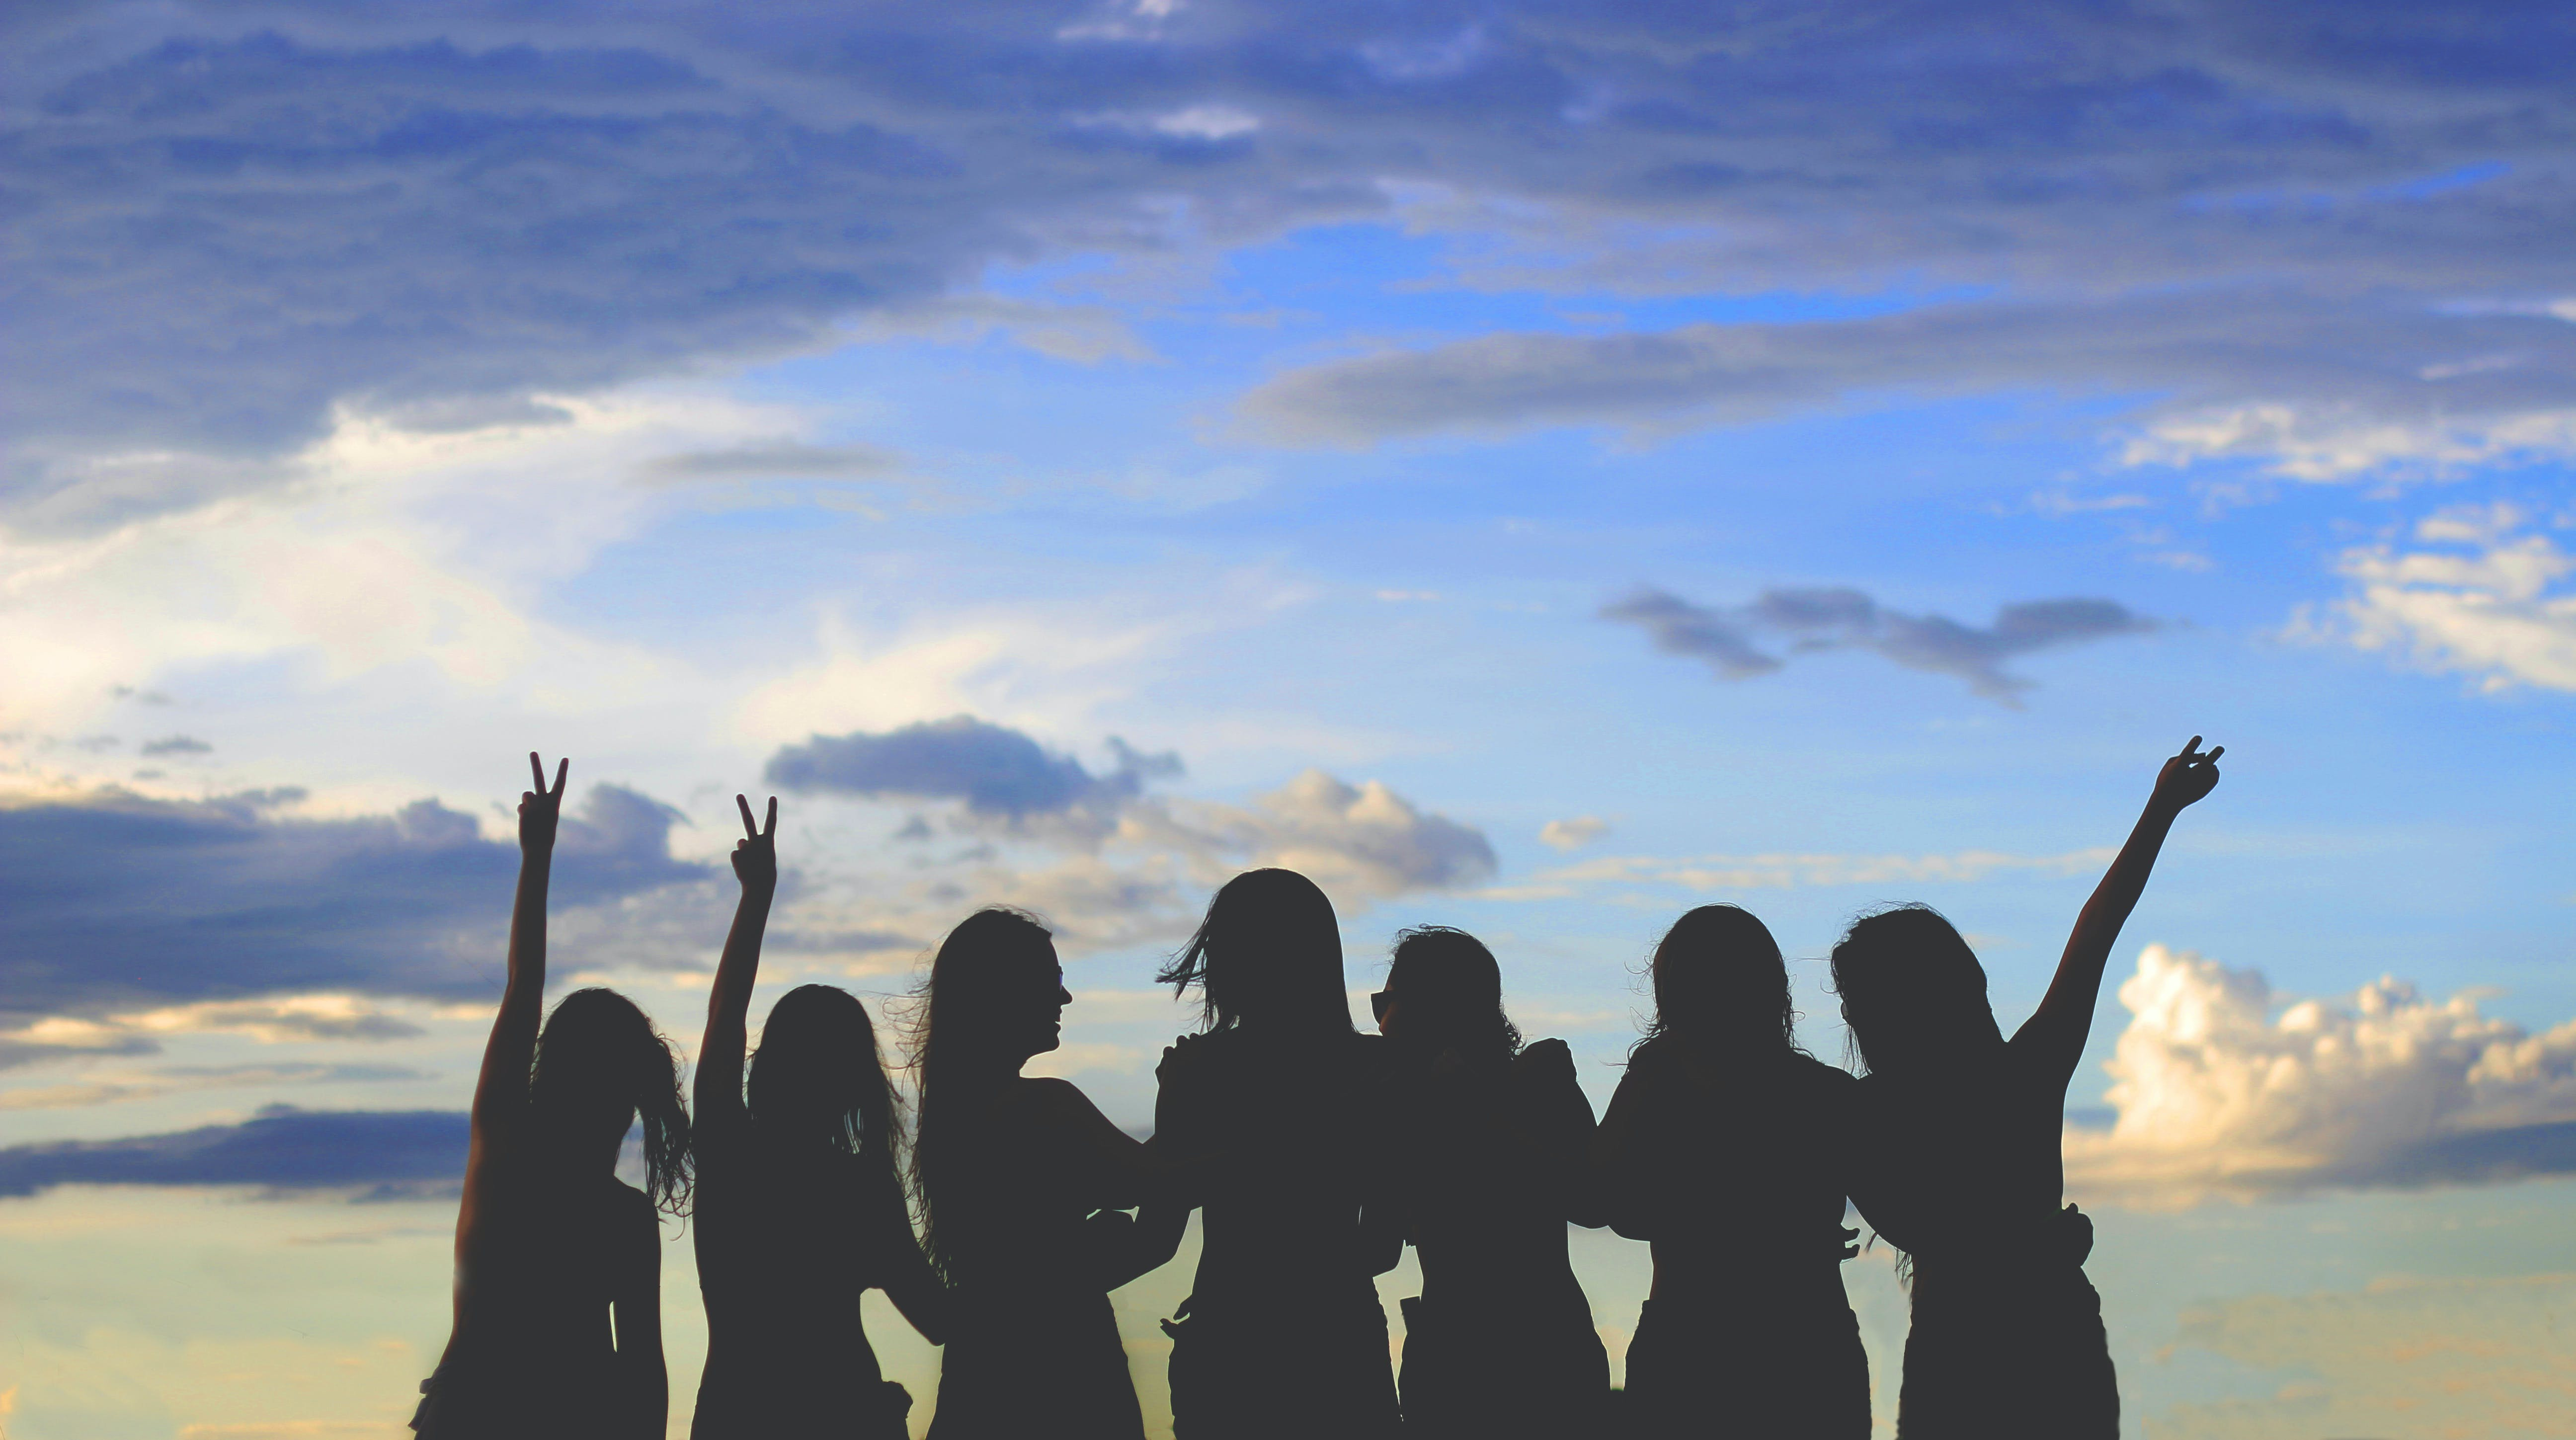 Silhouette Photo Of Women Under Blue Sky